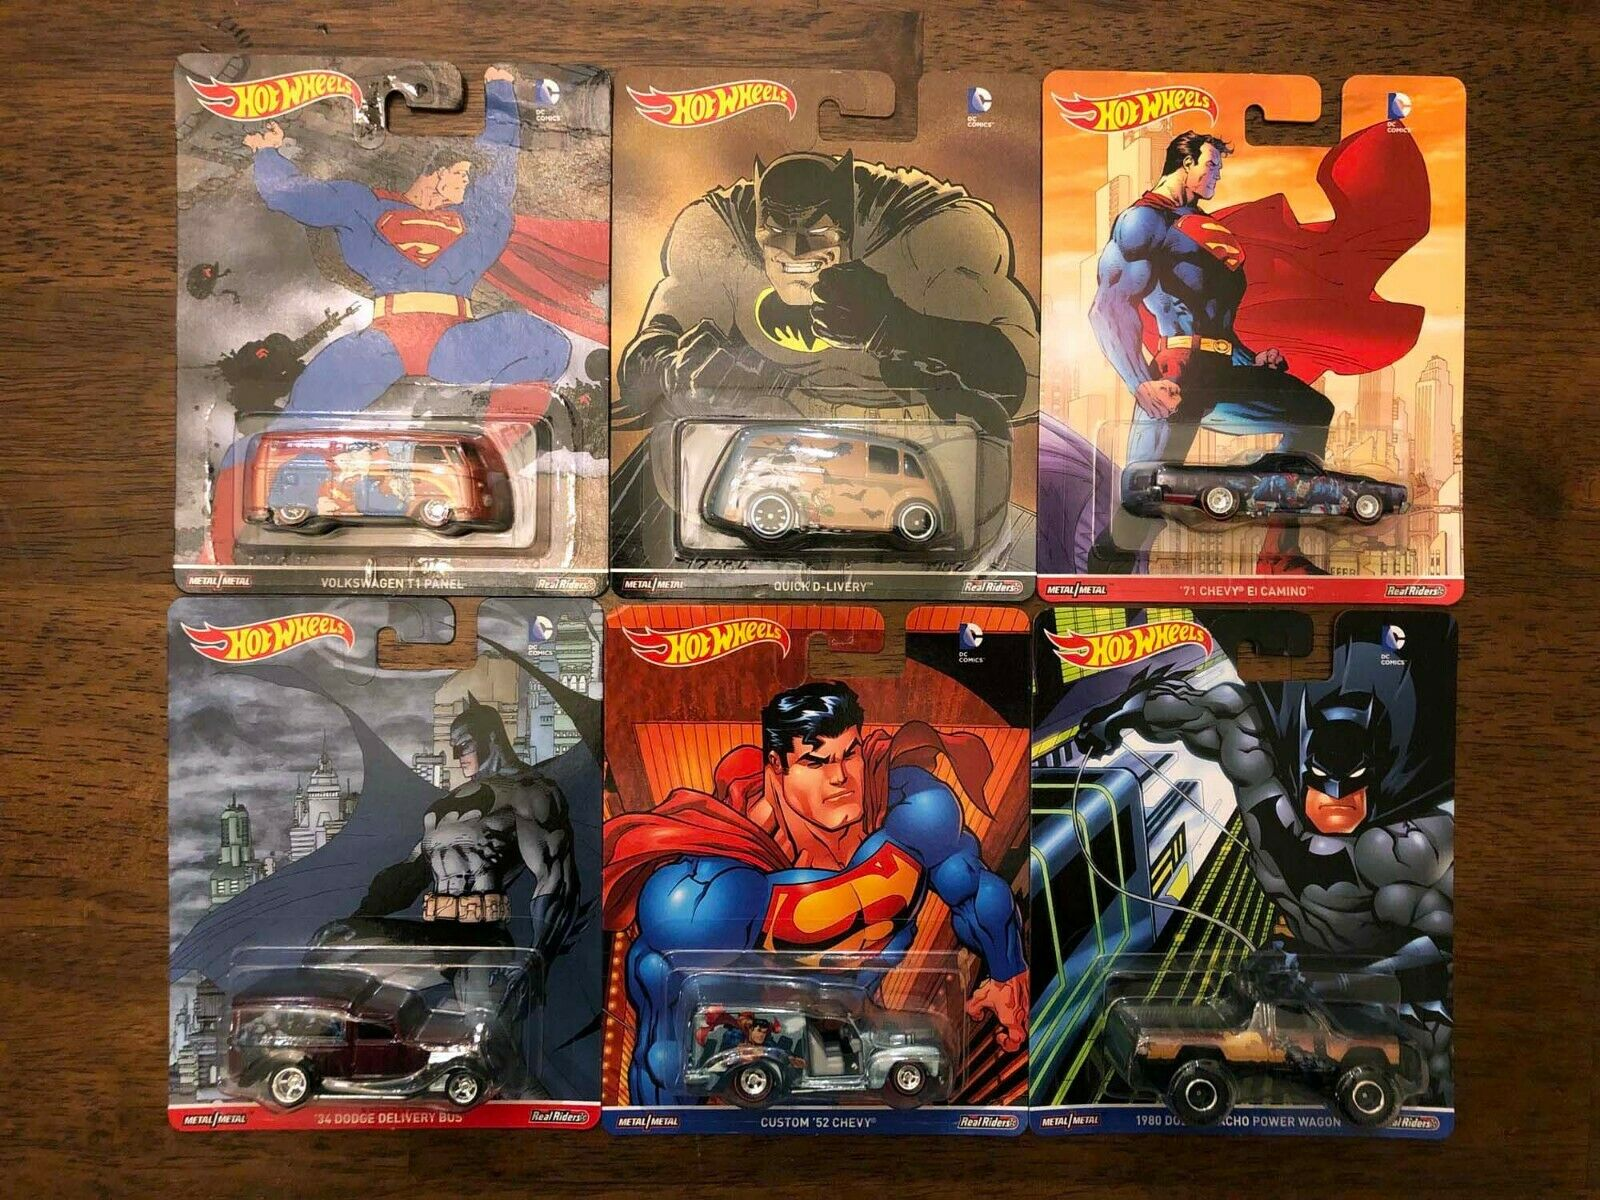 HOT WHEELS SET of 6 - POP CULTURE - DC COMICS BATMAN & SUPERMAN 2016 Power Wagon